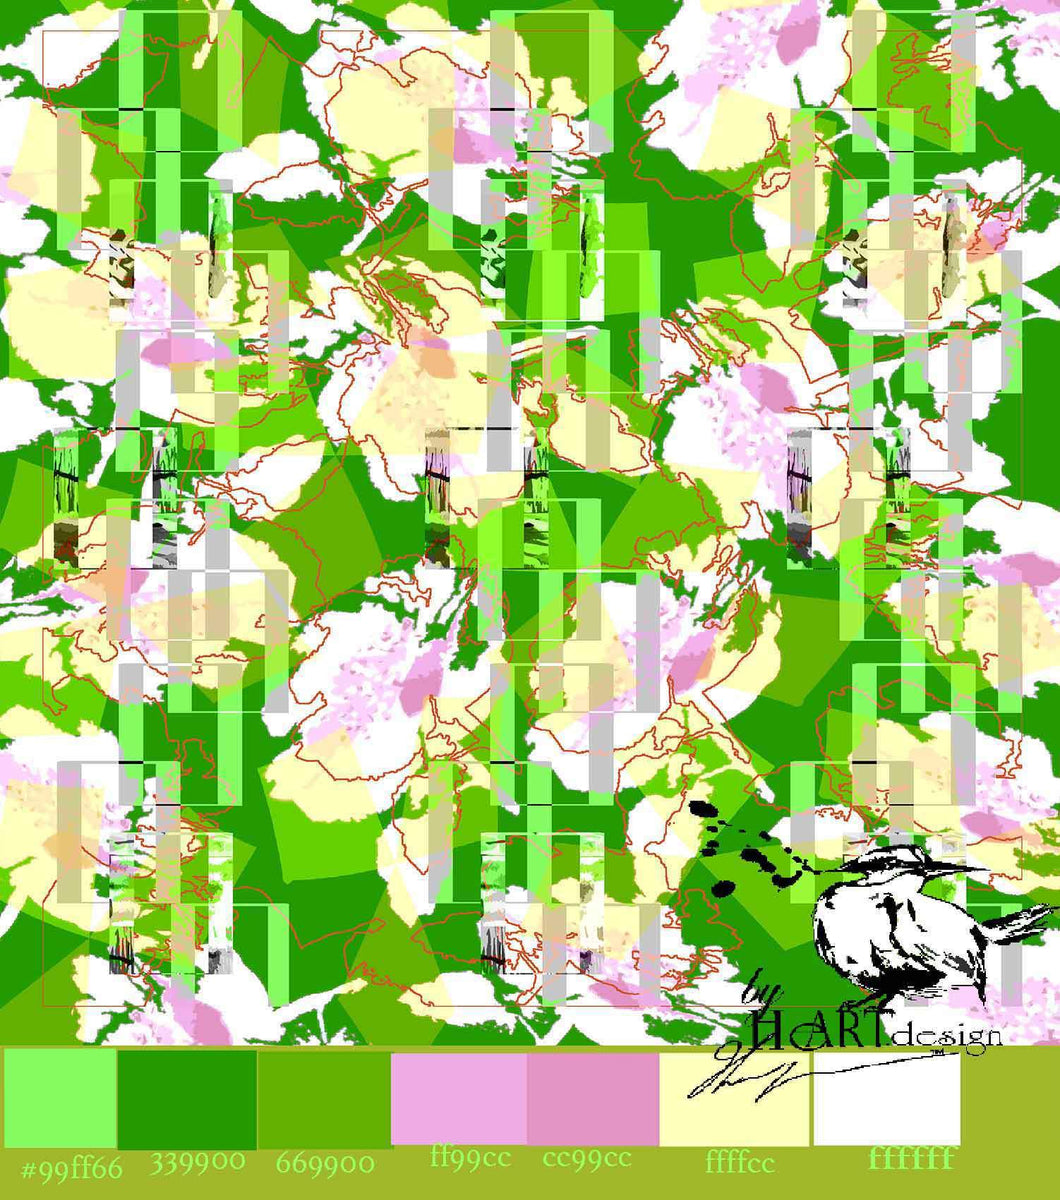 ABSTRACT PATTERN, TUTTI FRUTTI GREEN FLOWERS